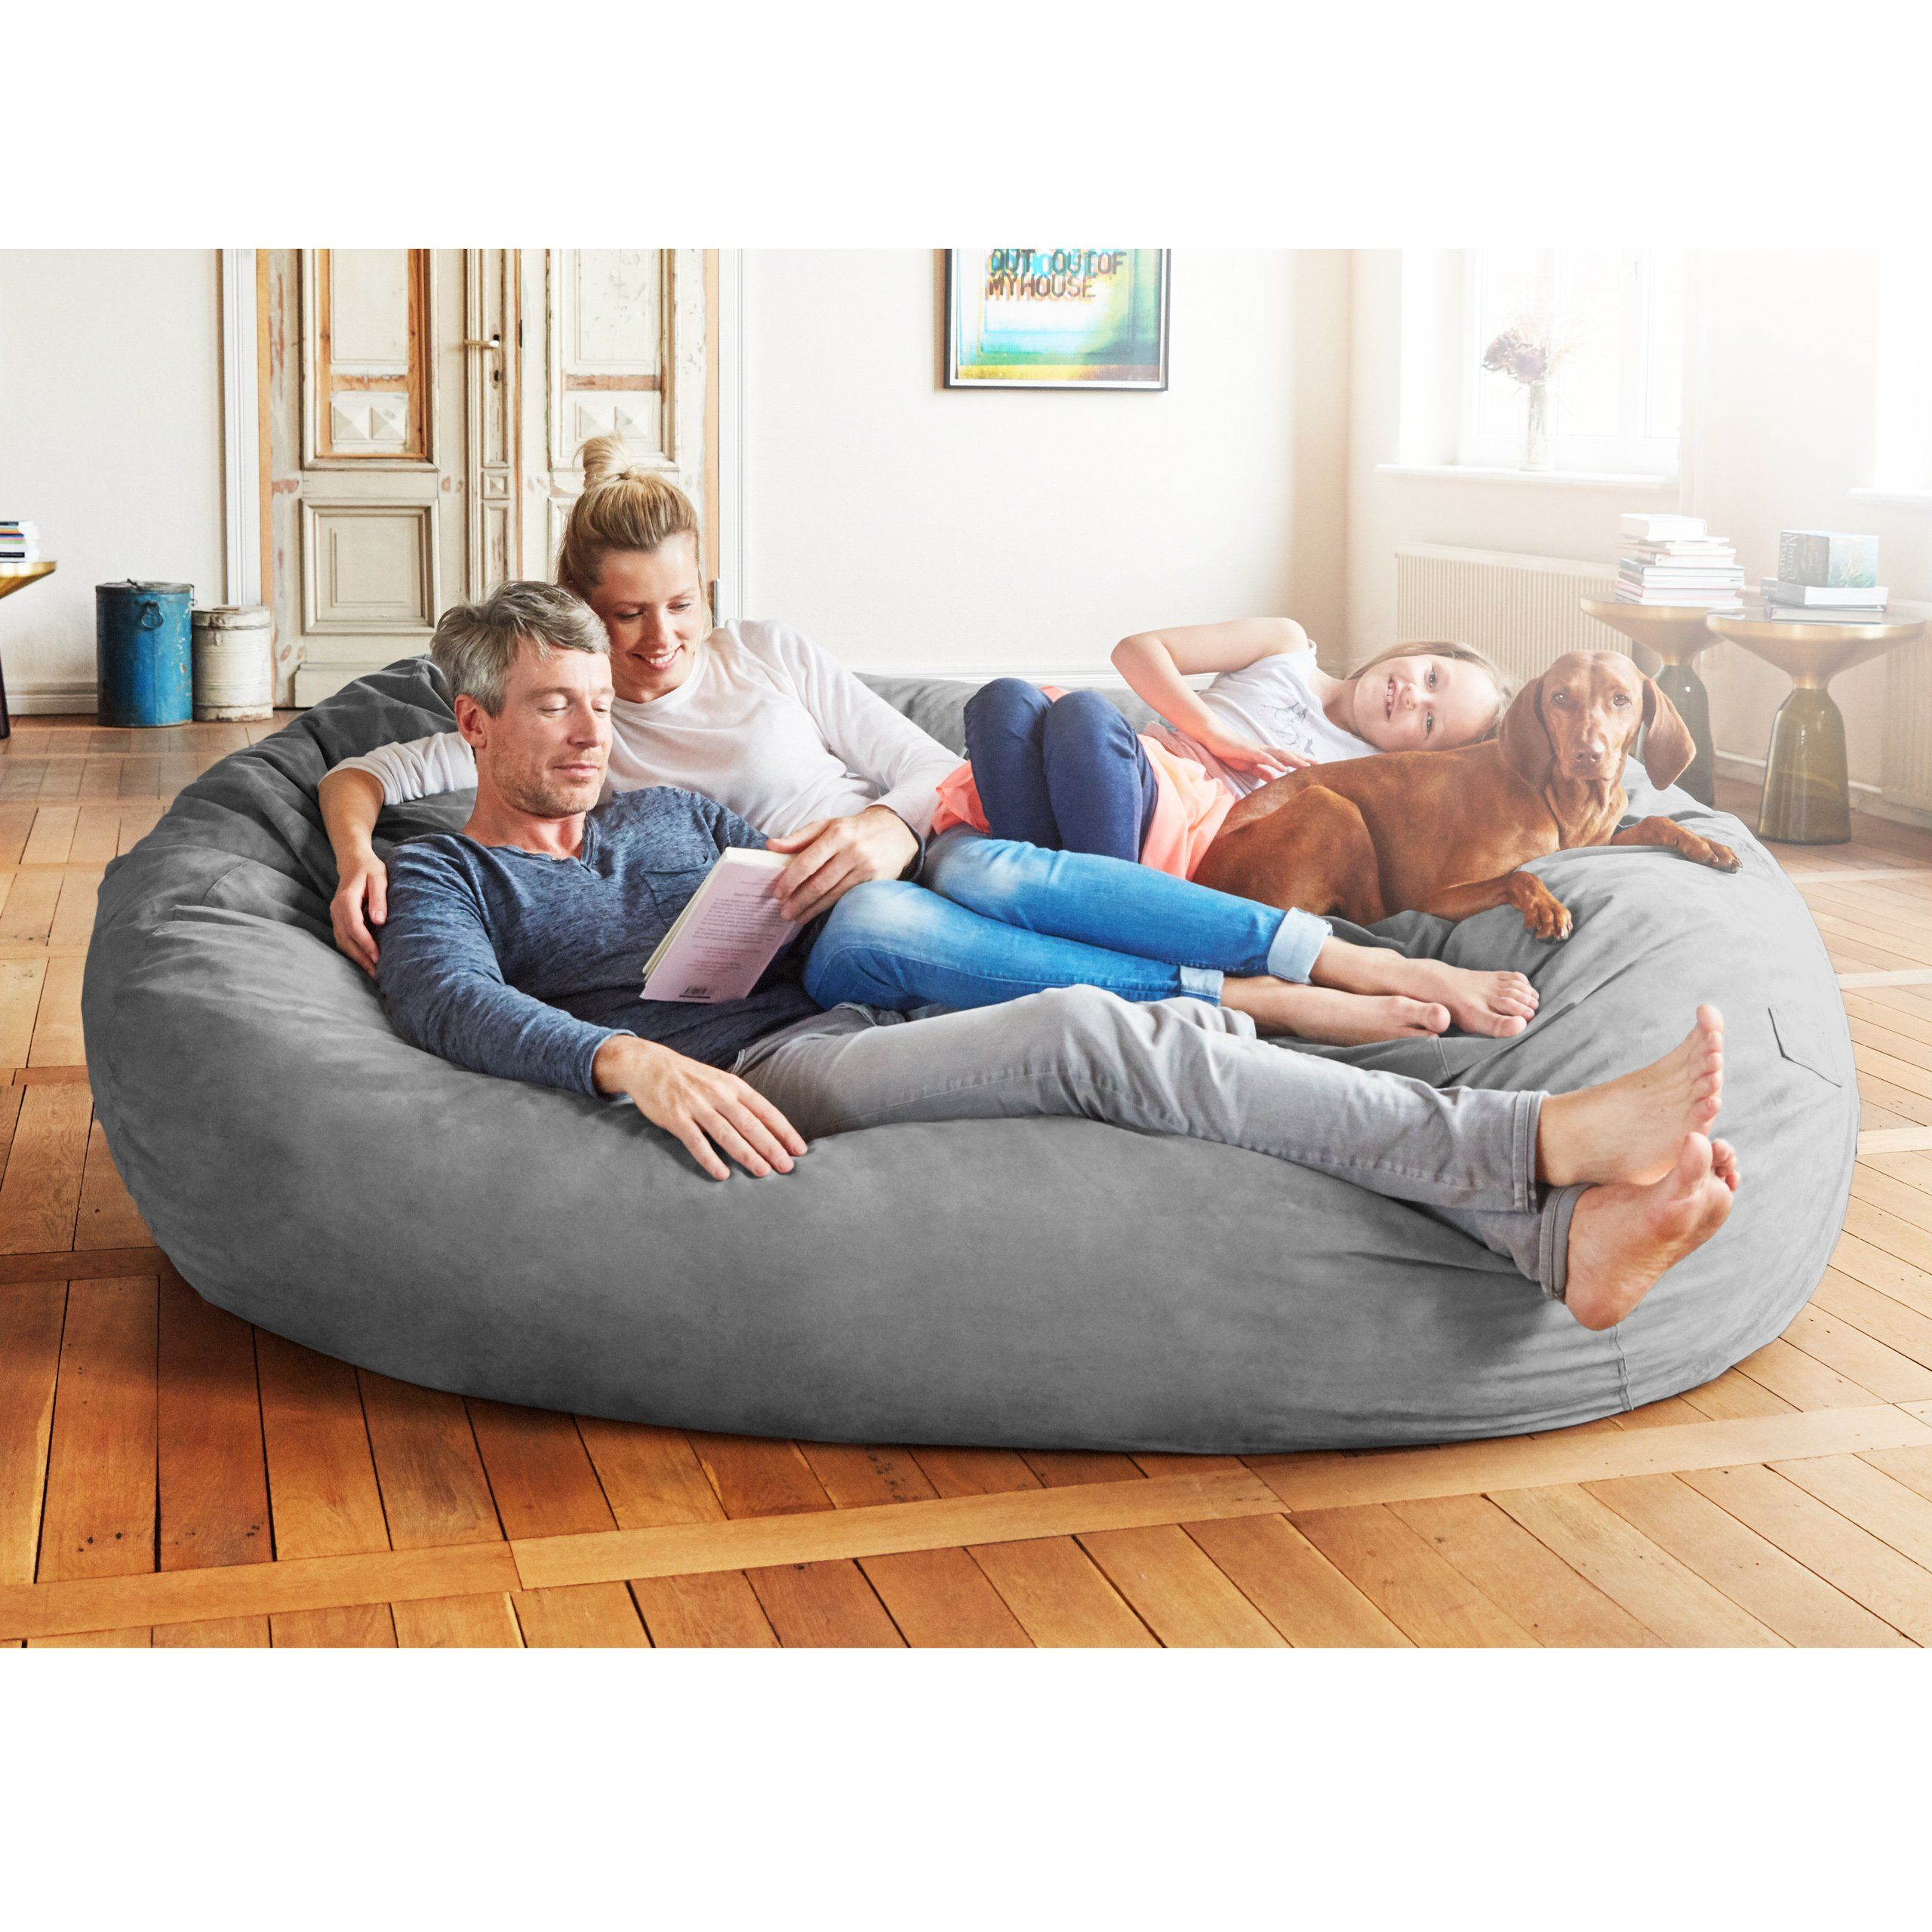 Lumaland Luxury 7Foot Bean Bag Chair with Microsuede Cover